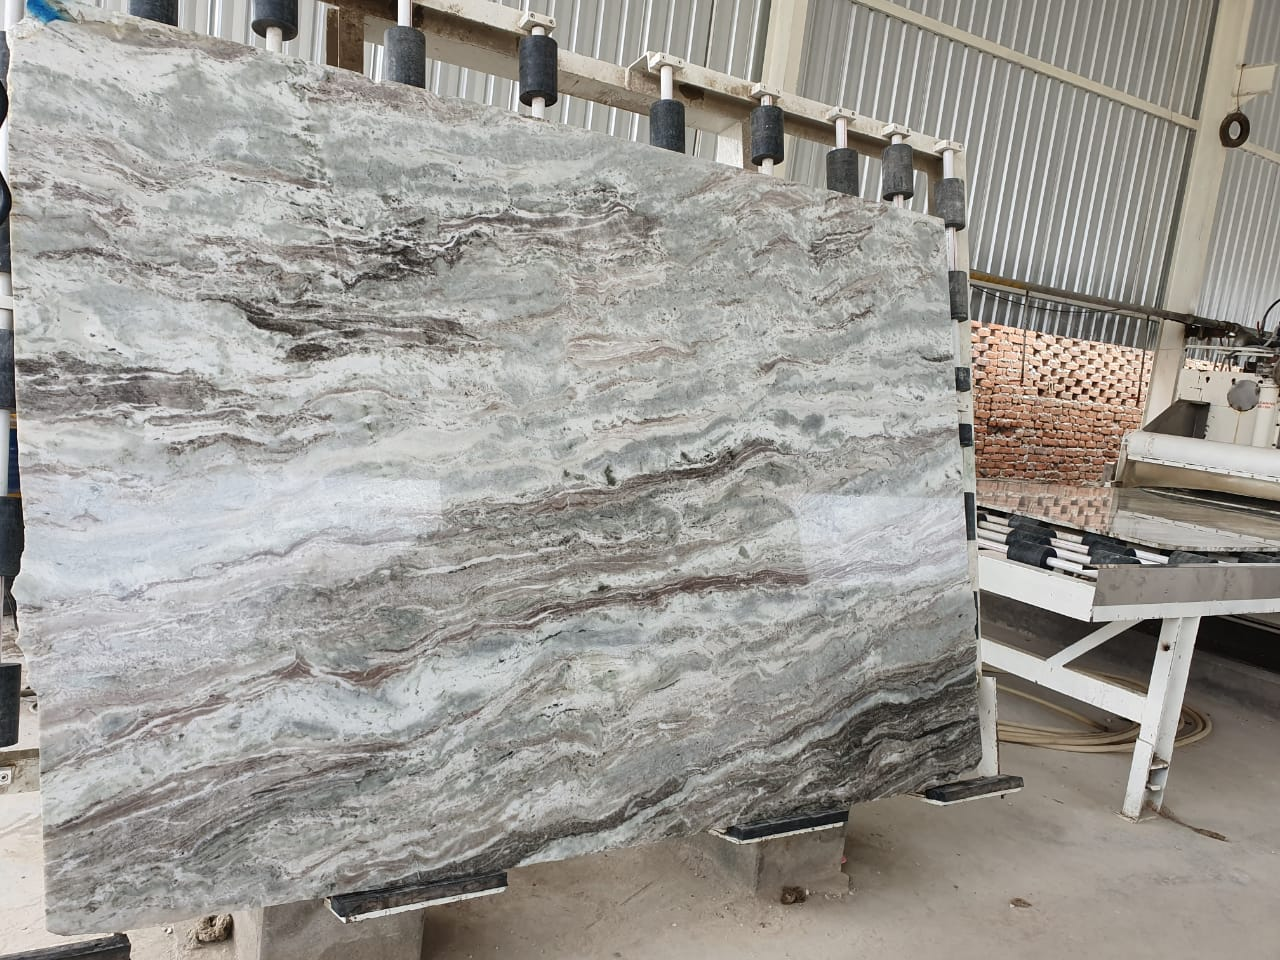 FANTASY GREY GRANITE SLABS